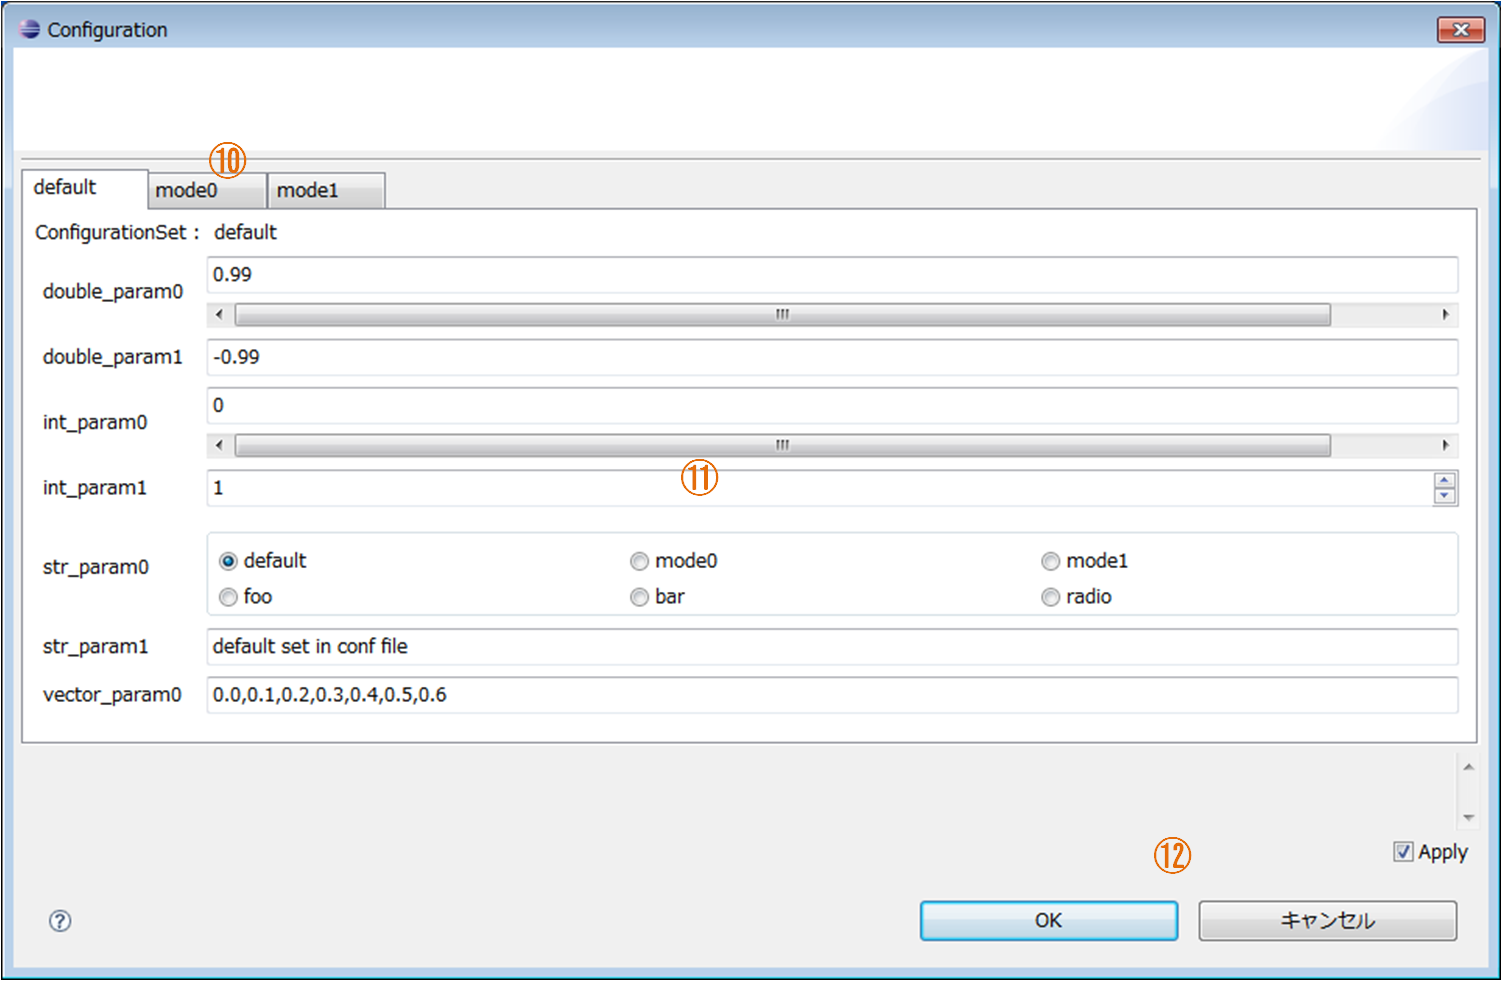 fig32ConfigurationViewDialog_ja.png